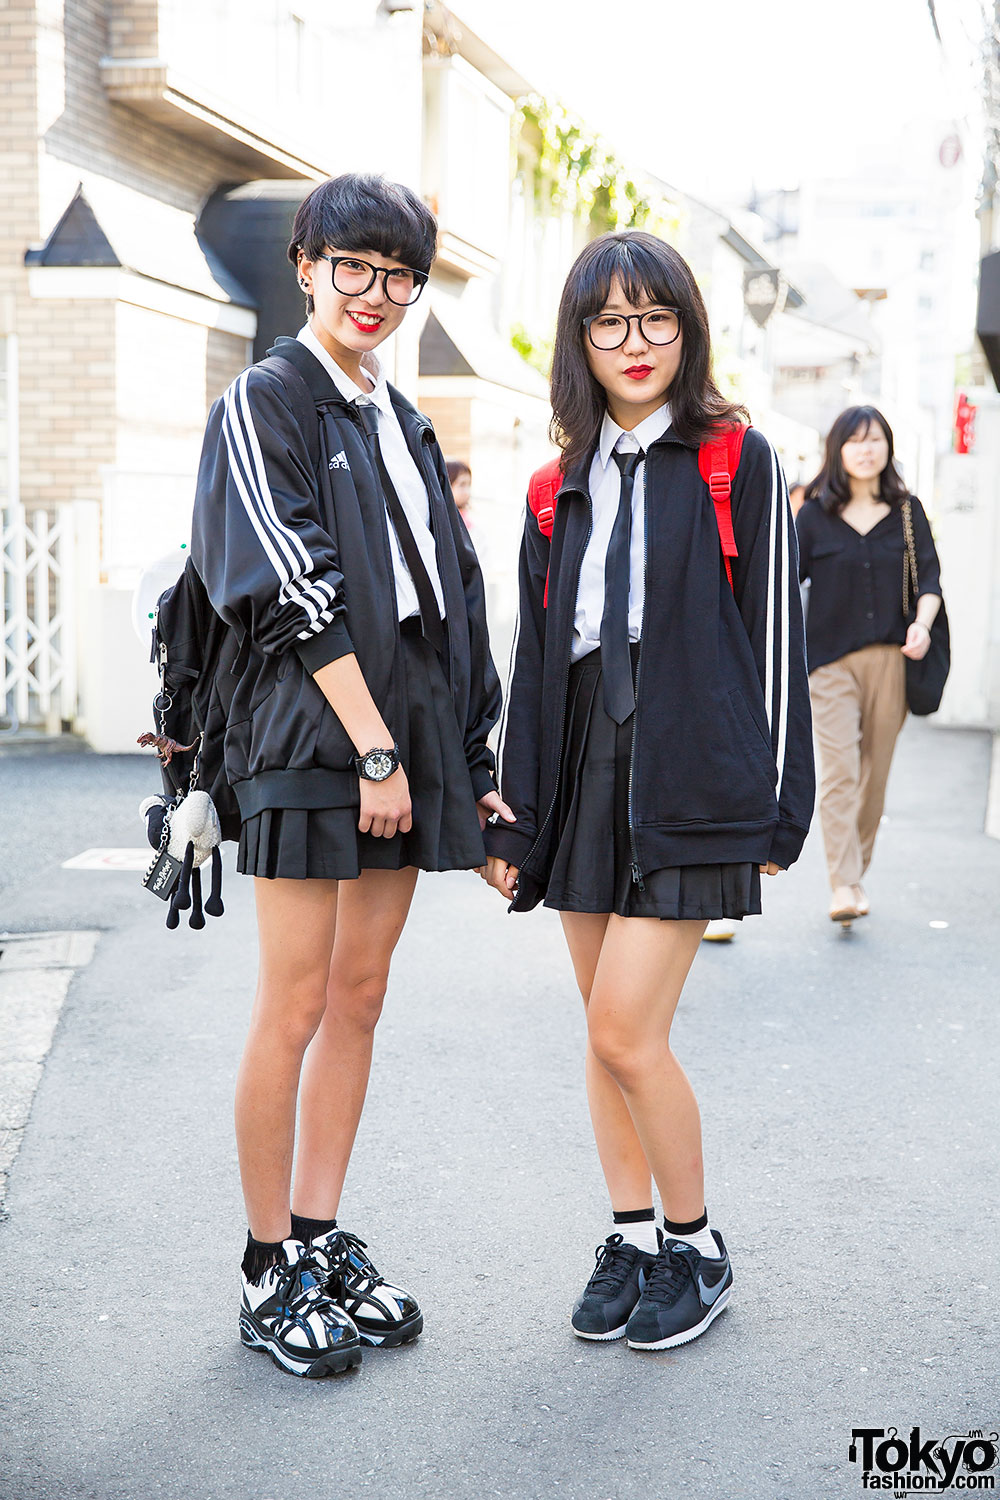 Harajuku school girls w glasses uniforms adidas jacket nike sneakers Japanese fashion style icon